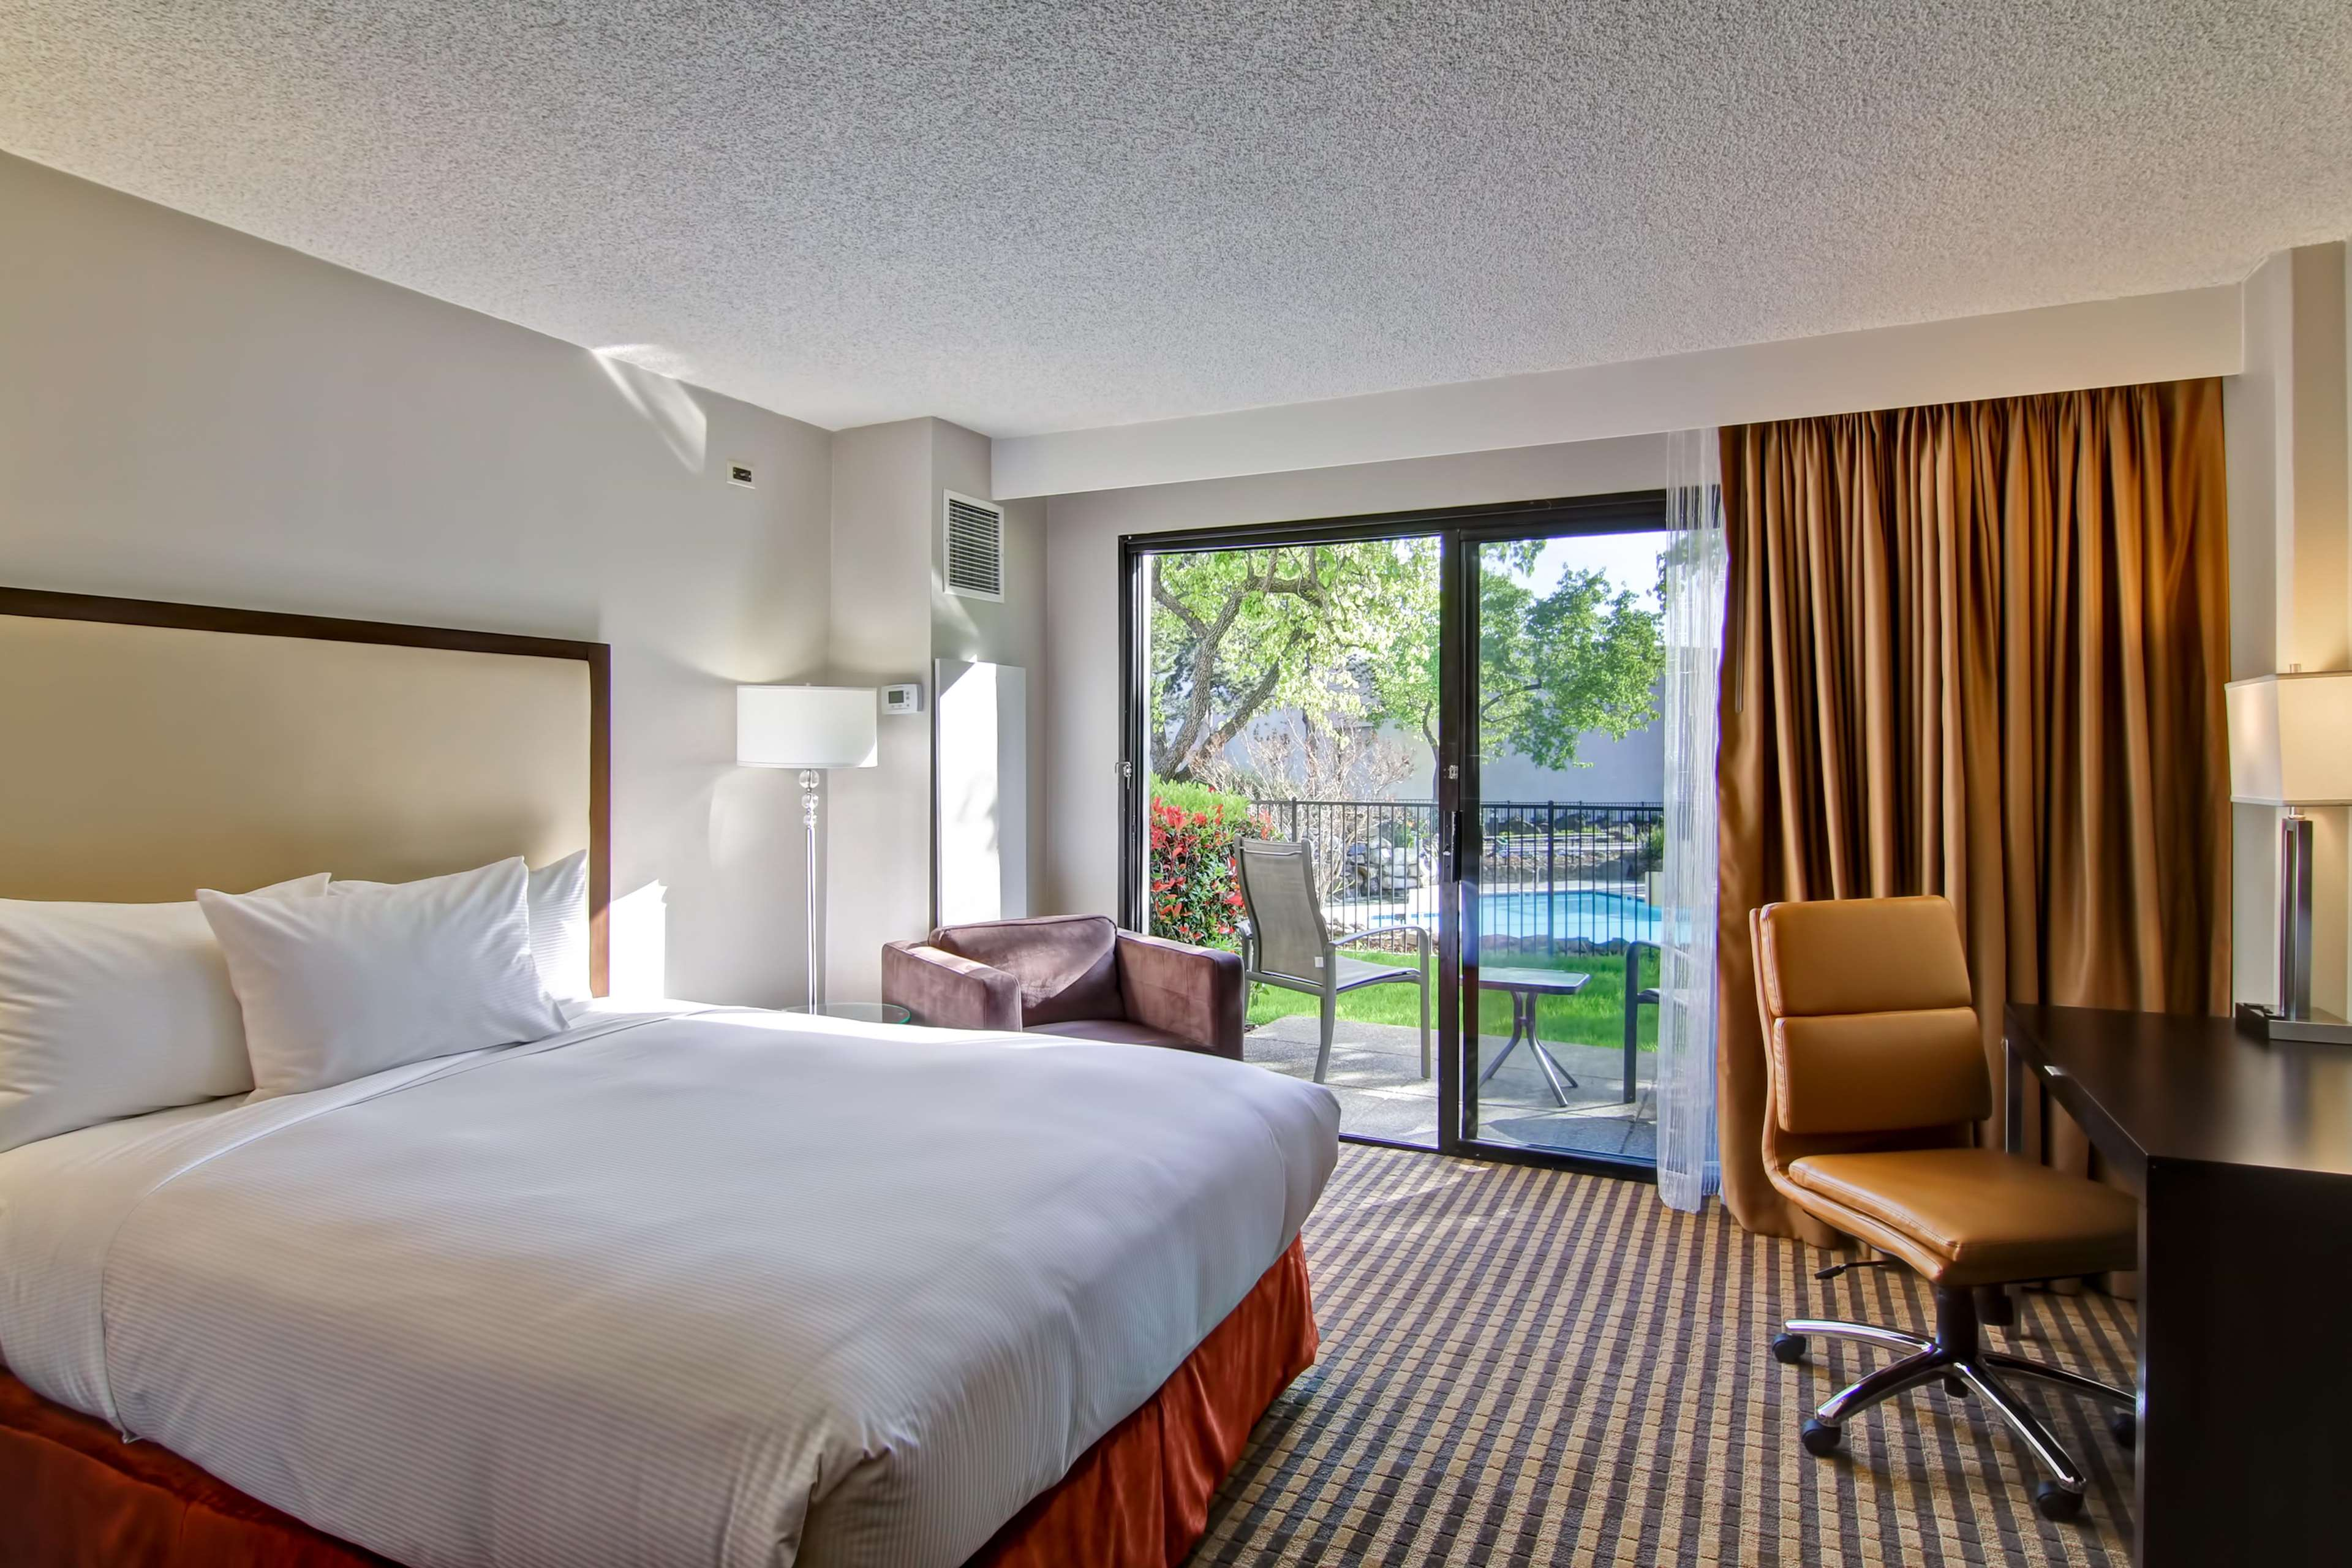 DoubleTree by Hilton Hotel Pleasanton at the Club image 38